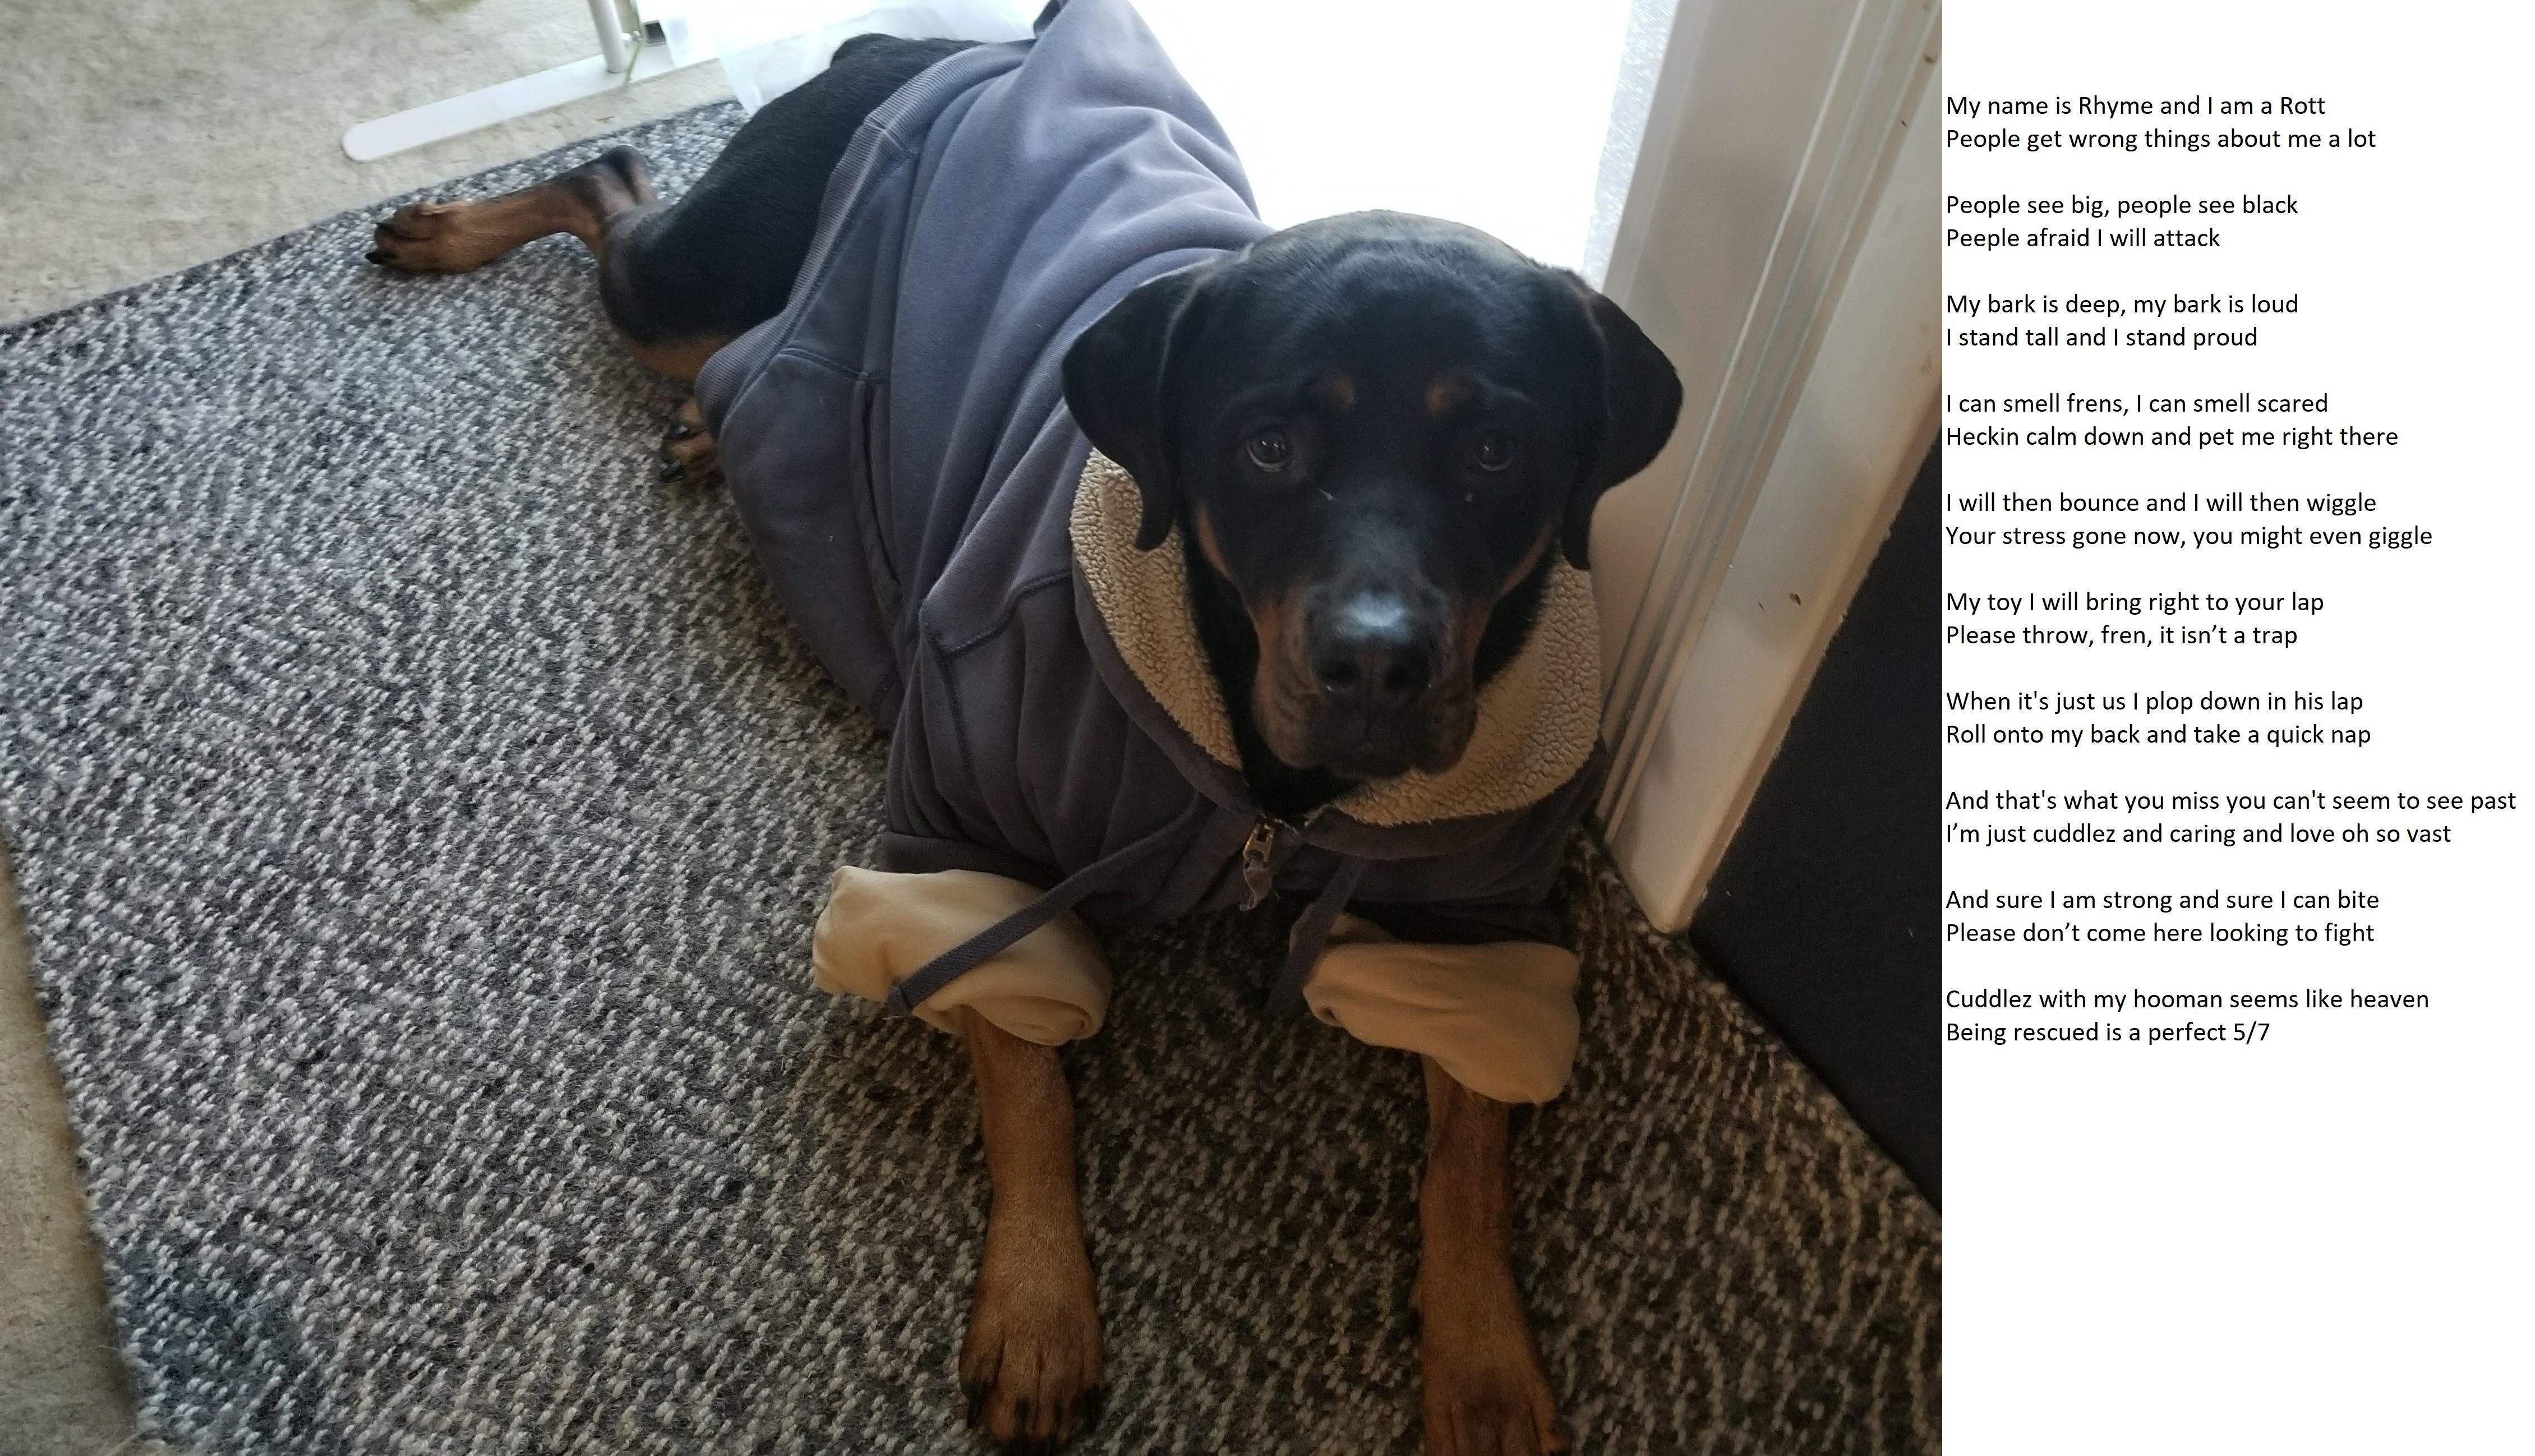 Ode to the rottie dogs pets dog adopt love cute animals